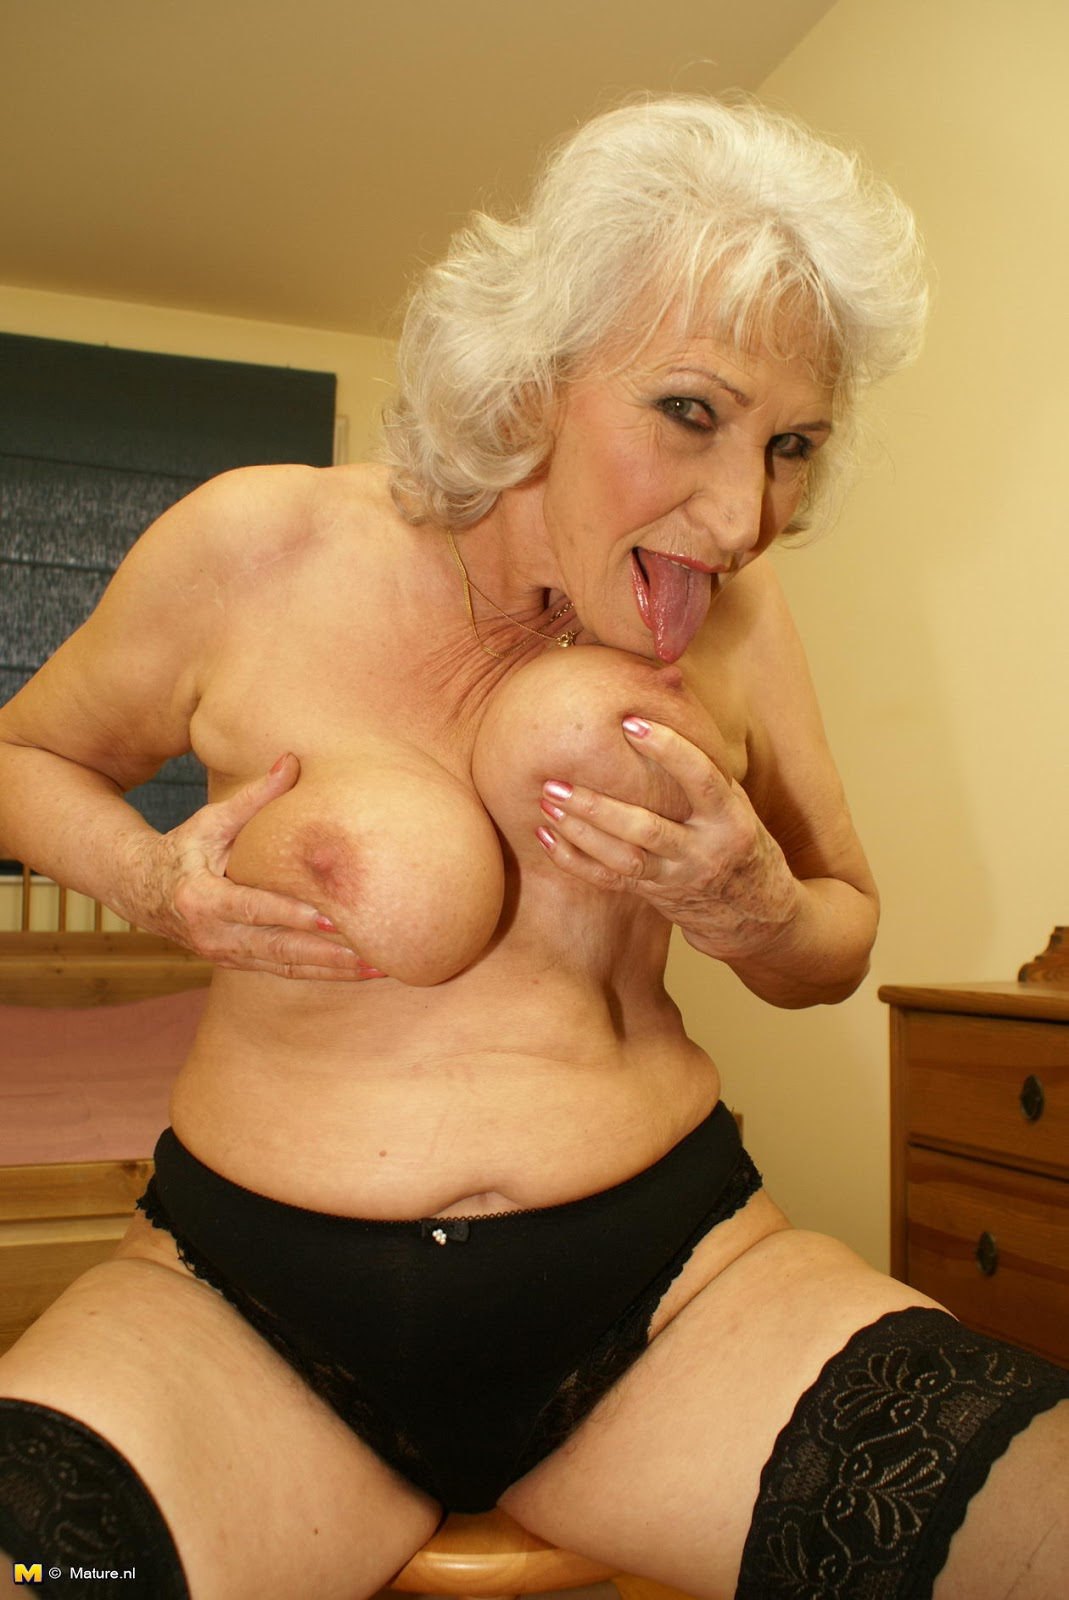 Granny norma porn pictures — 15